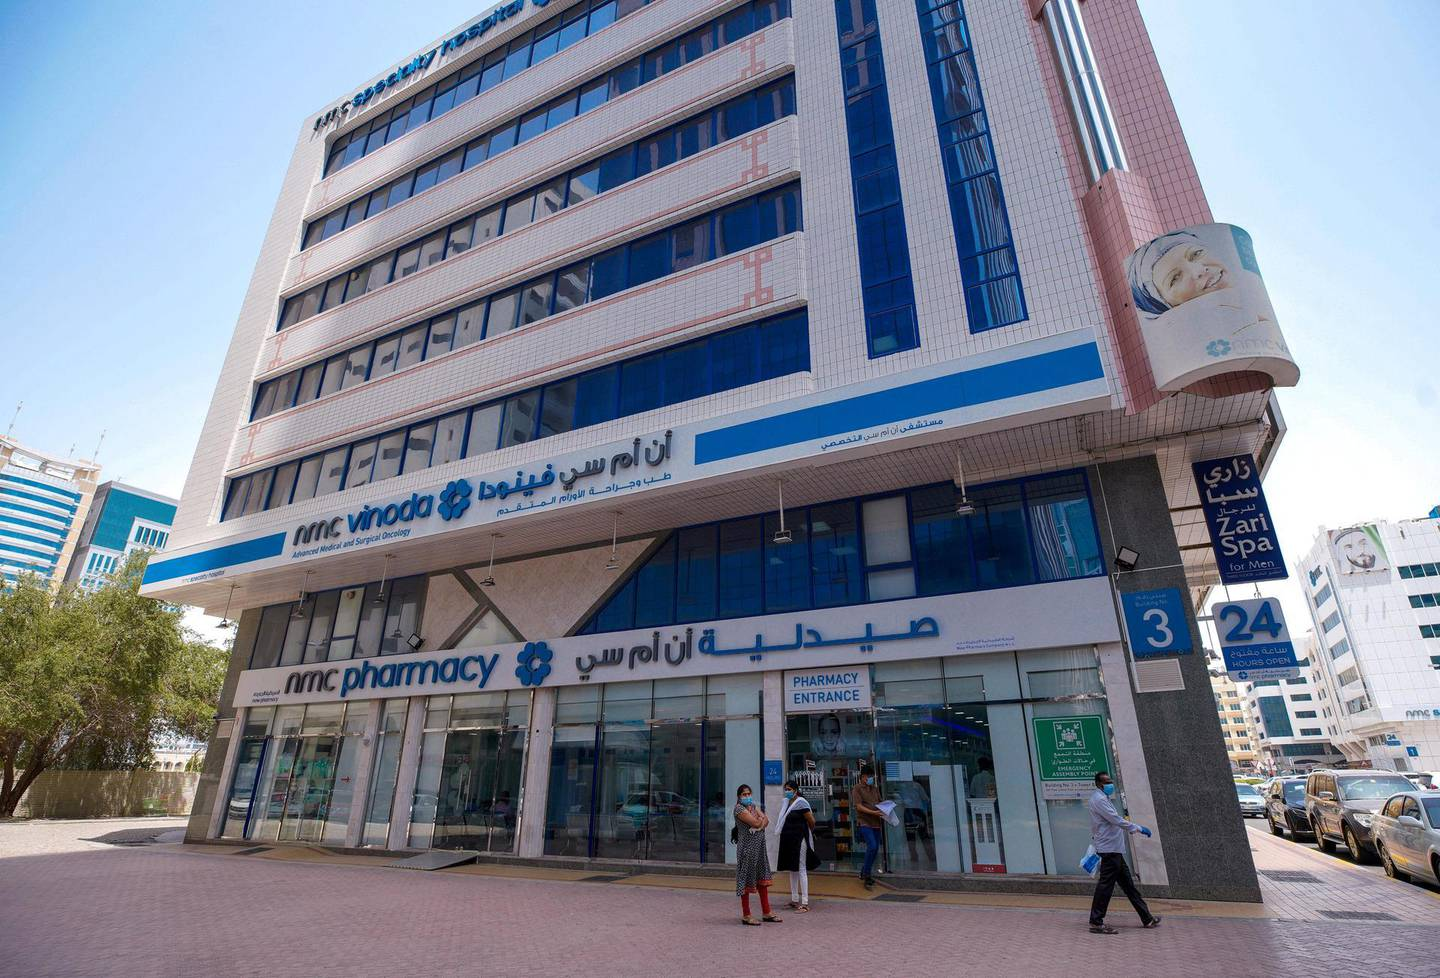 Abu Dhabi, United Arab Emirates, May 25, 2020.     The NMC Pharmacy along the Zayed The First Street, Abu Dhabi.Victor Besa  / The NationalSection:  Standalone / Stock